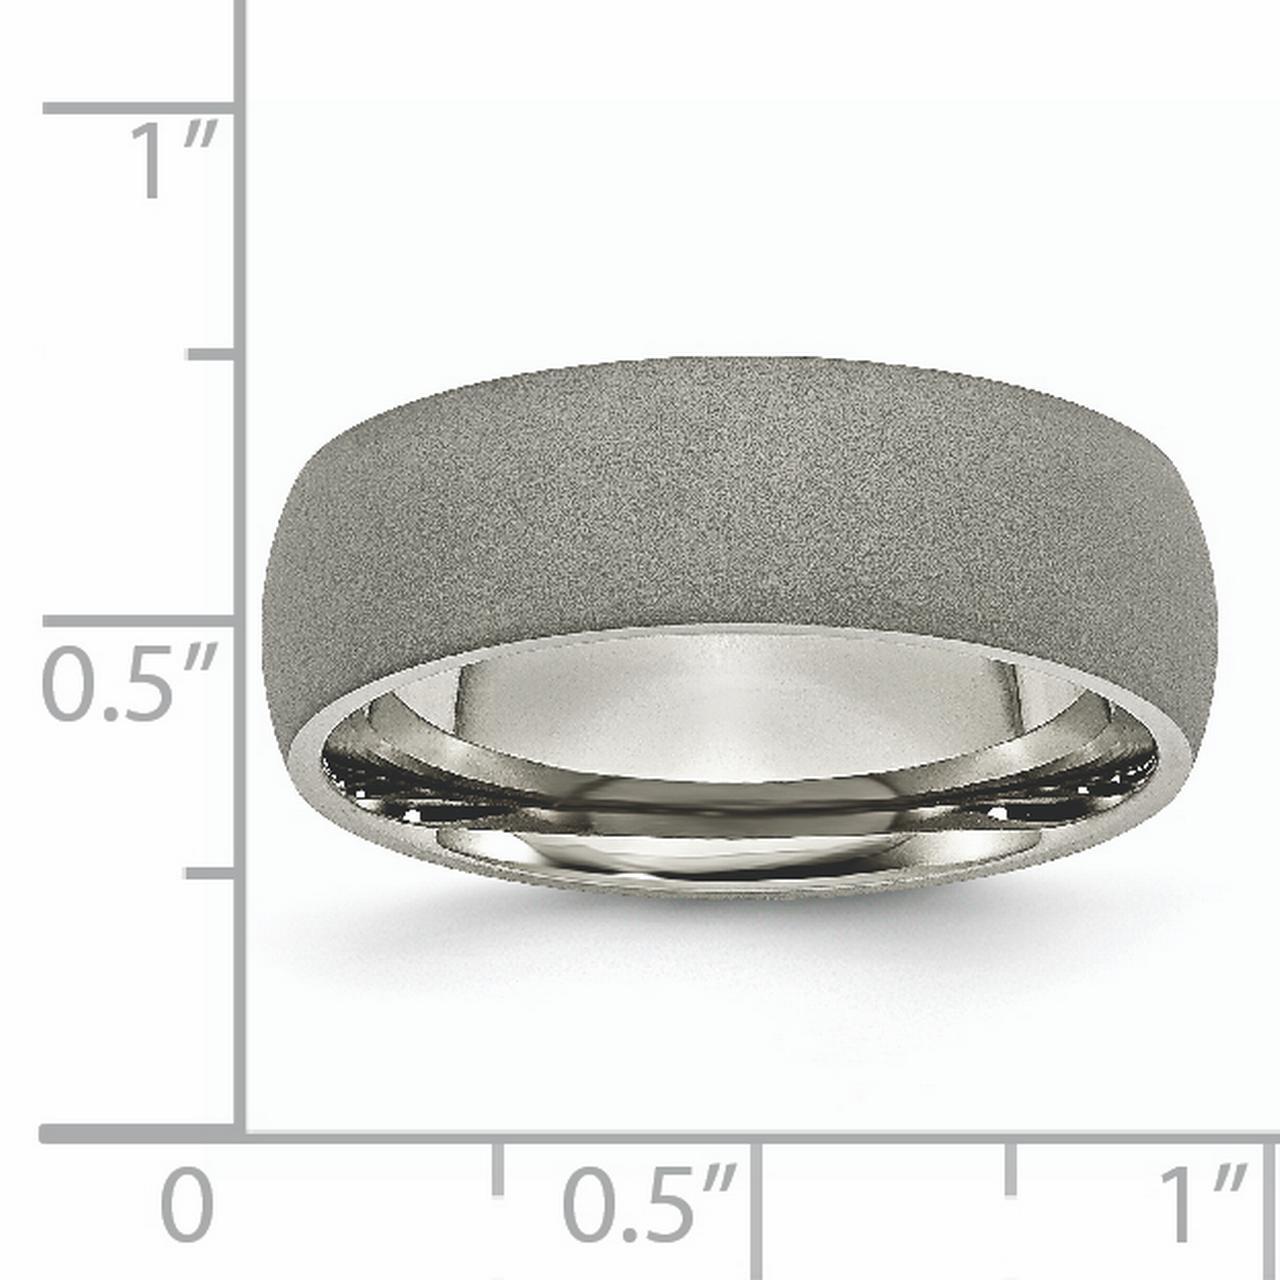 Titanium Stone Finish 7mm Wedding Ring Band Size 9.50 Classic Domed Fashion Jewelry Gifts For Women For Her - image 5 of 6